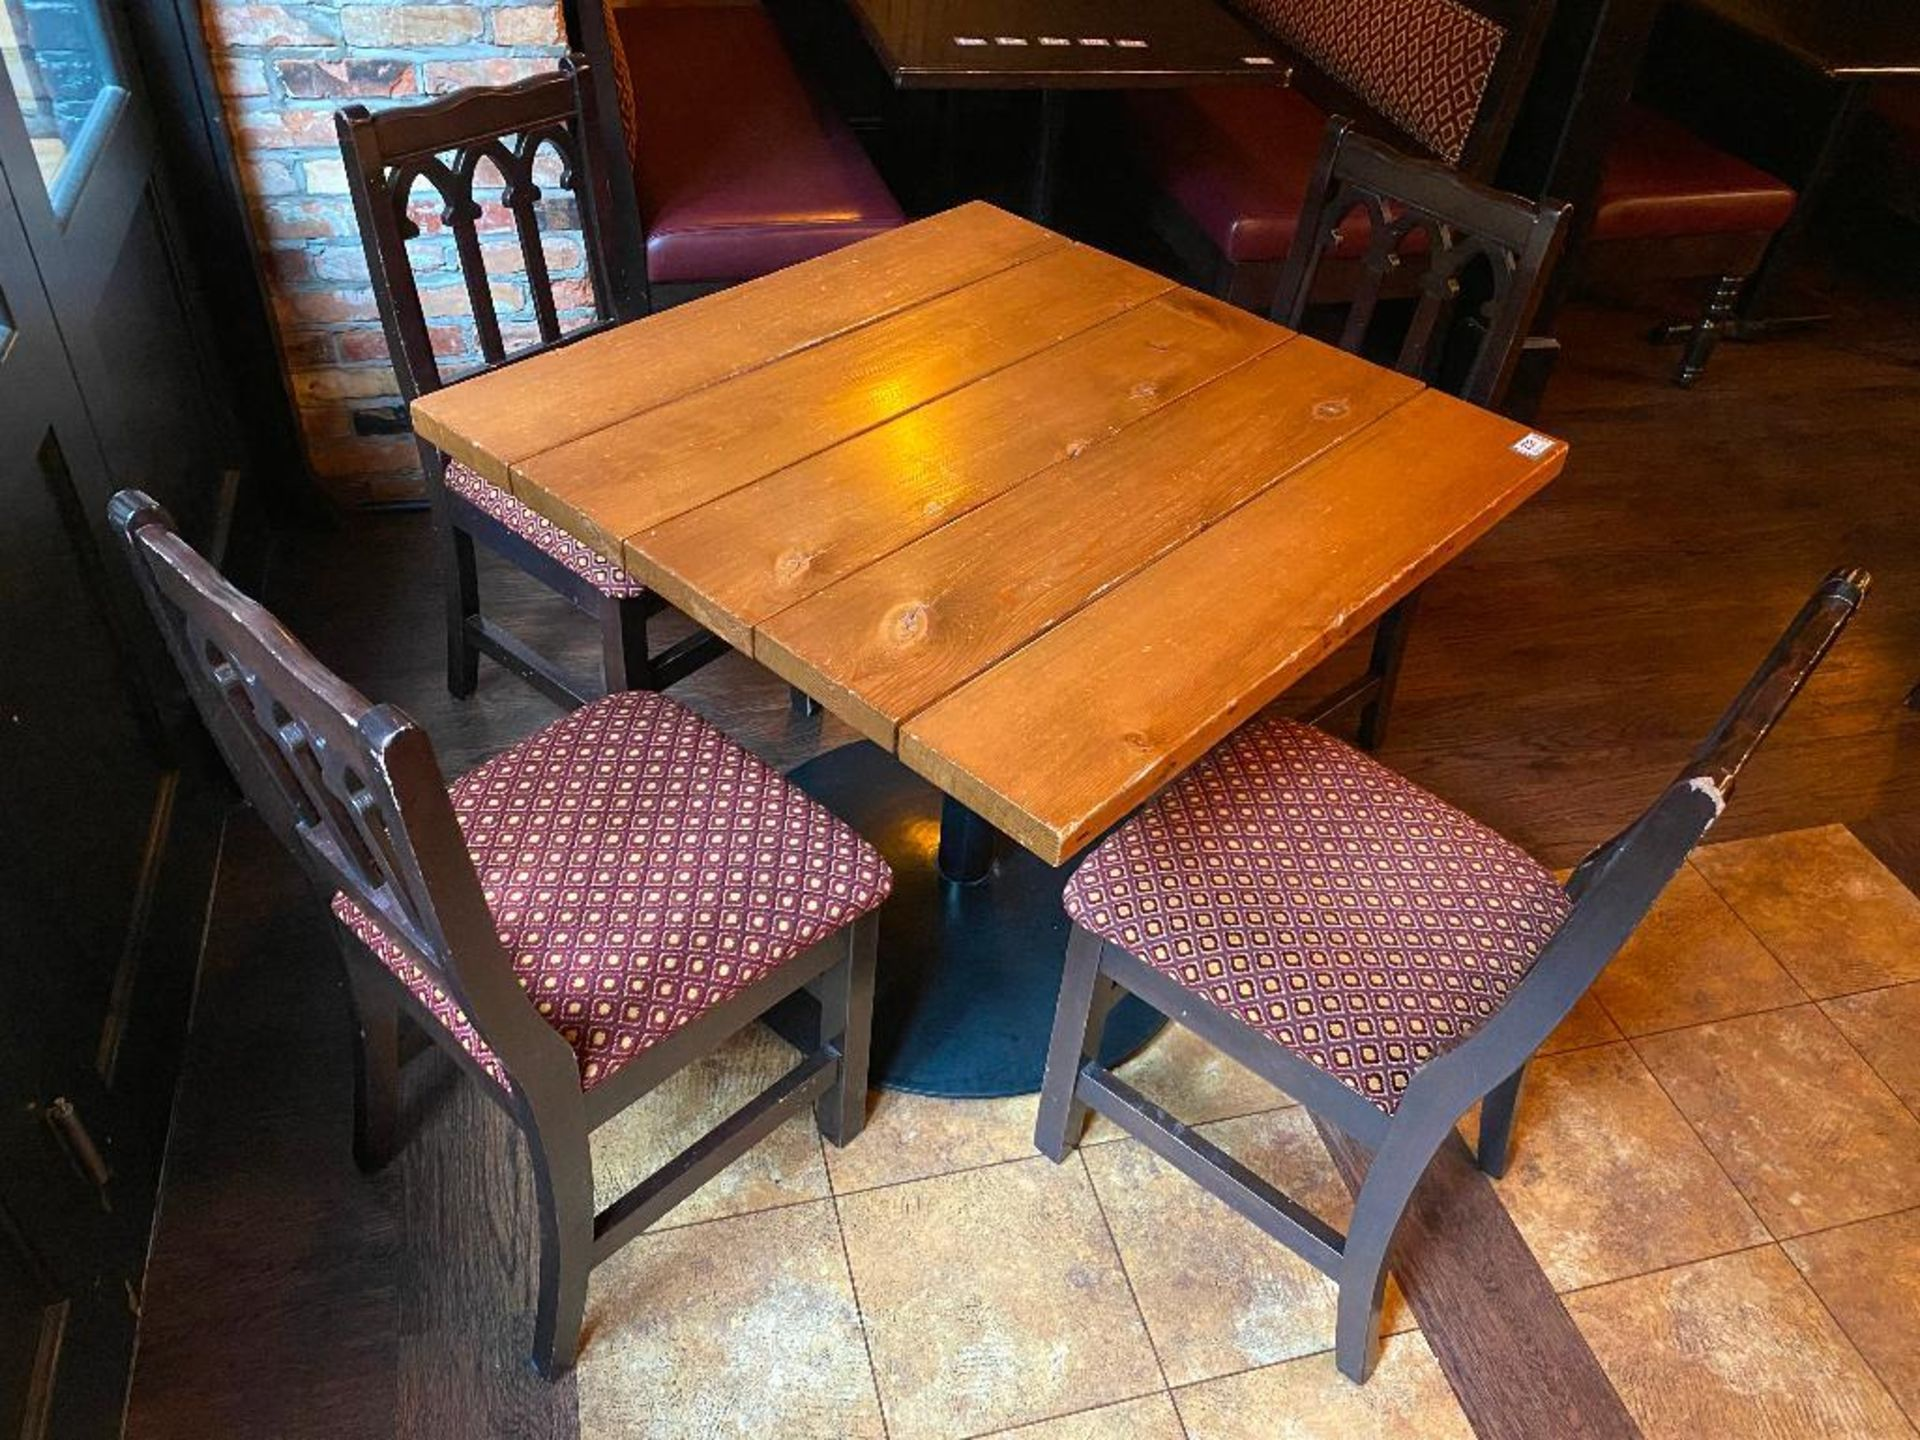 "36"" X 36"" SQUARE WOOD TOP TABLE WITH 4 CHAIRS - Image 2 of 2"